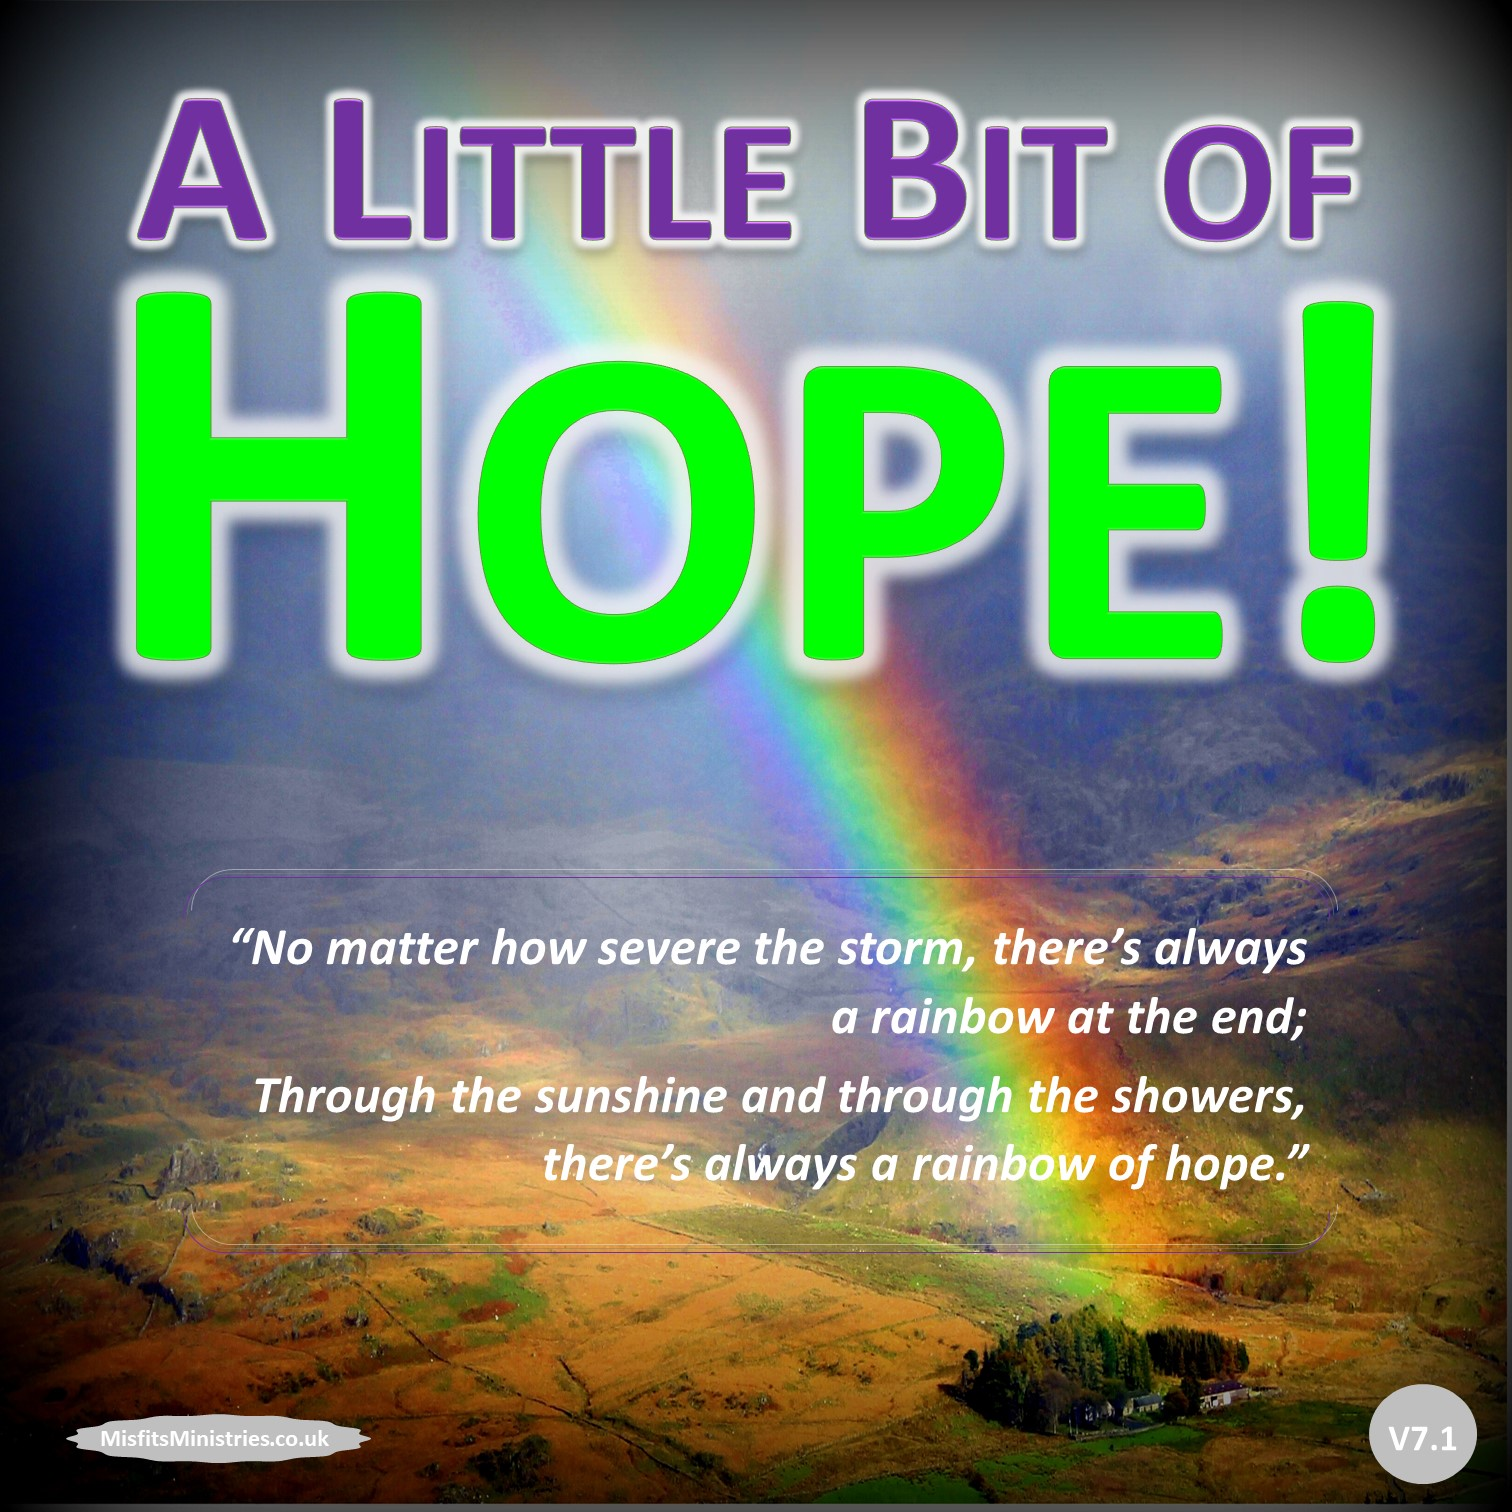 Read 'A Little Bit of Hope!'